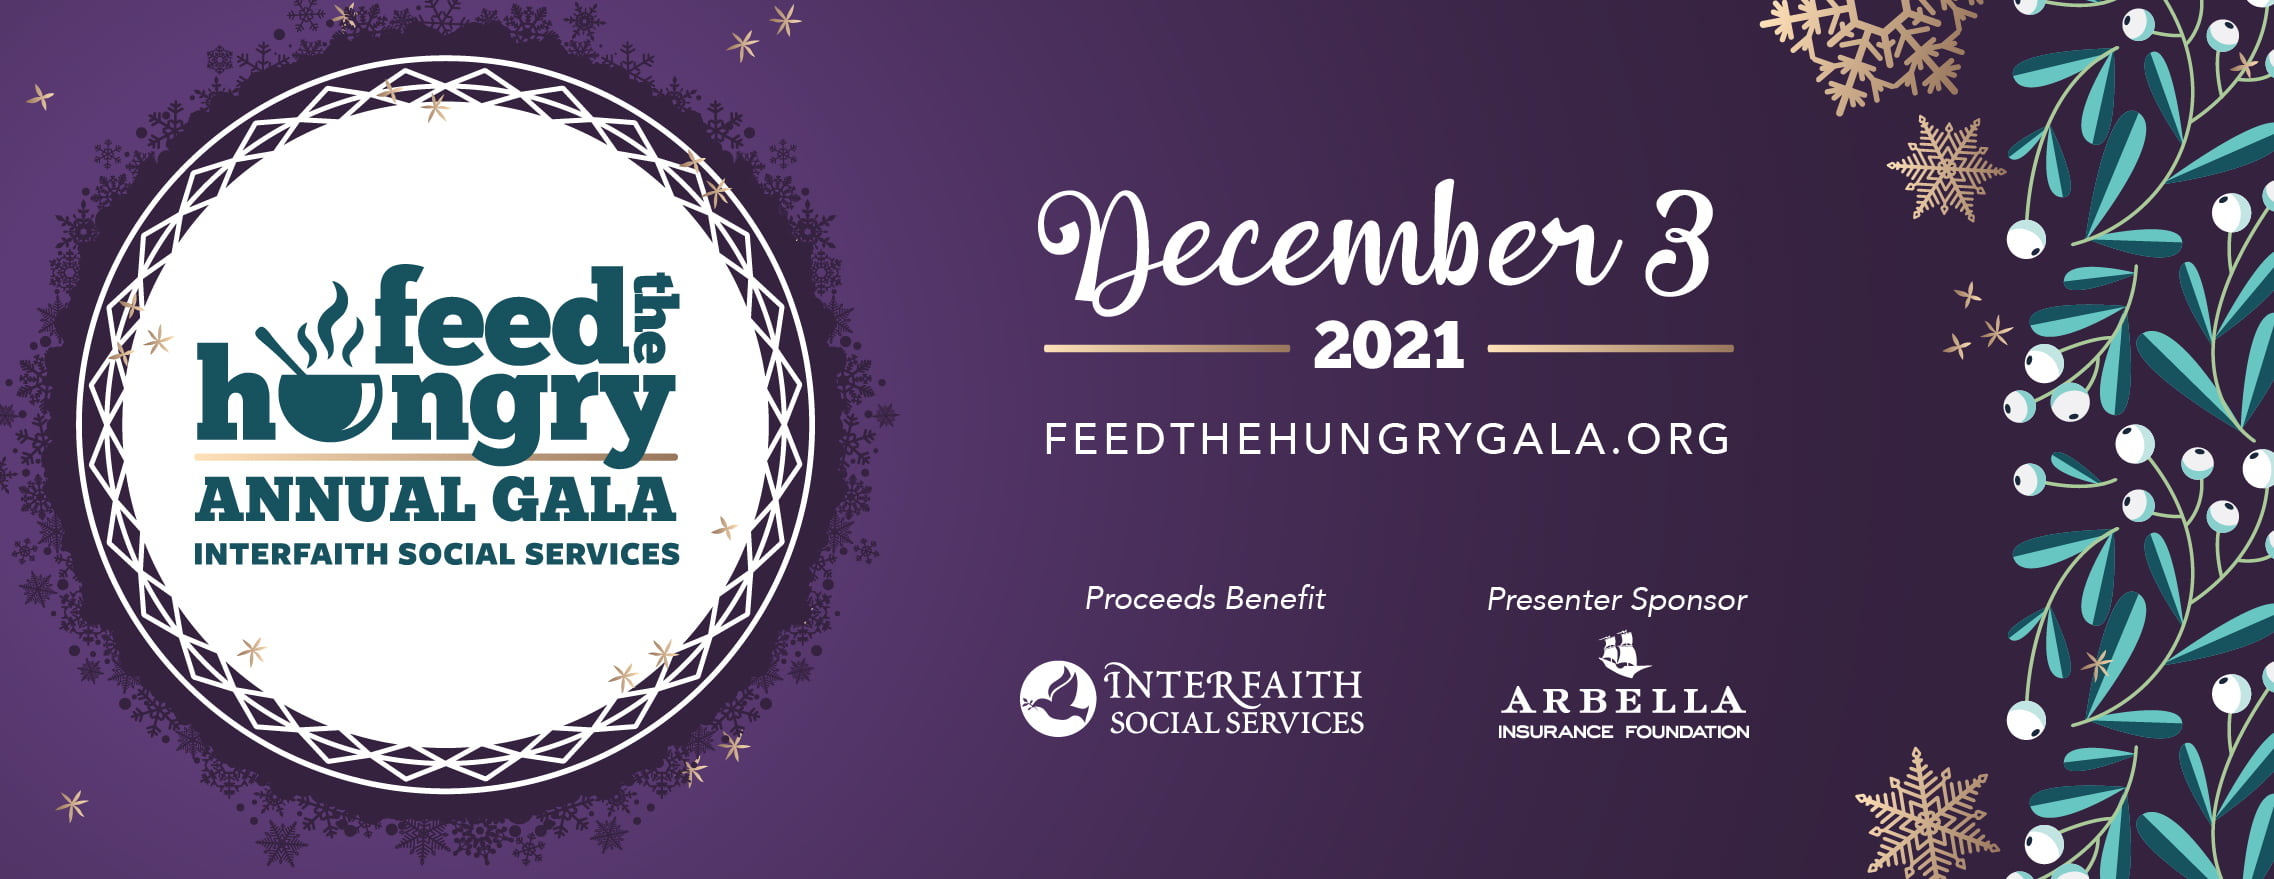 Feed the Hungry Gala - December 3, 2021